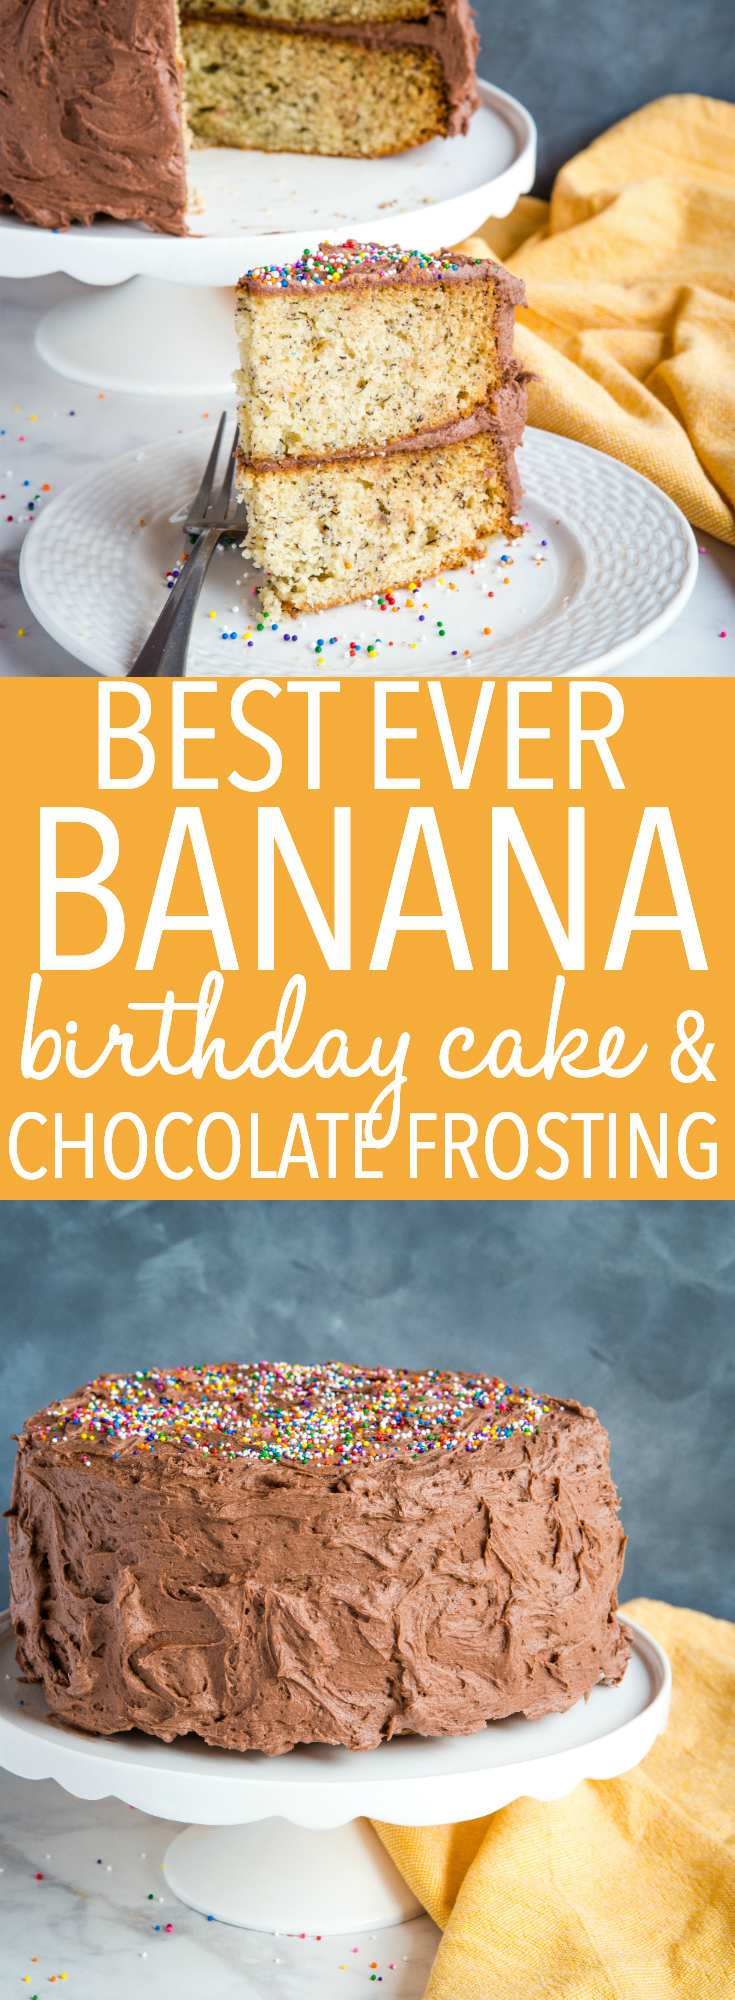 Magnificent Banana Birthday Cake With Chocolate Frosting The Busy Baker Funny Birthday Cards Online Elaedamsfinfo